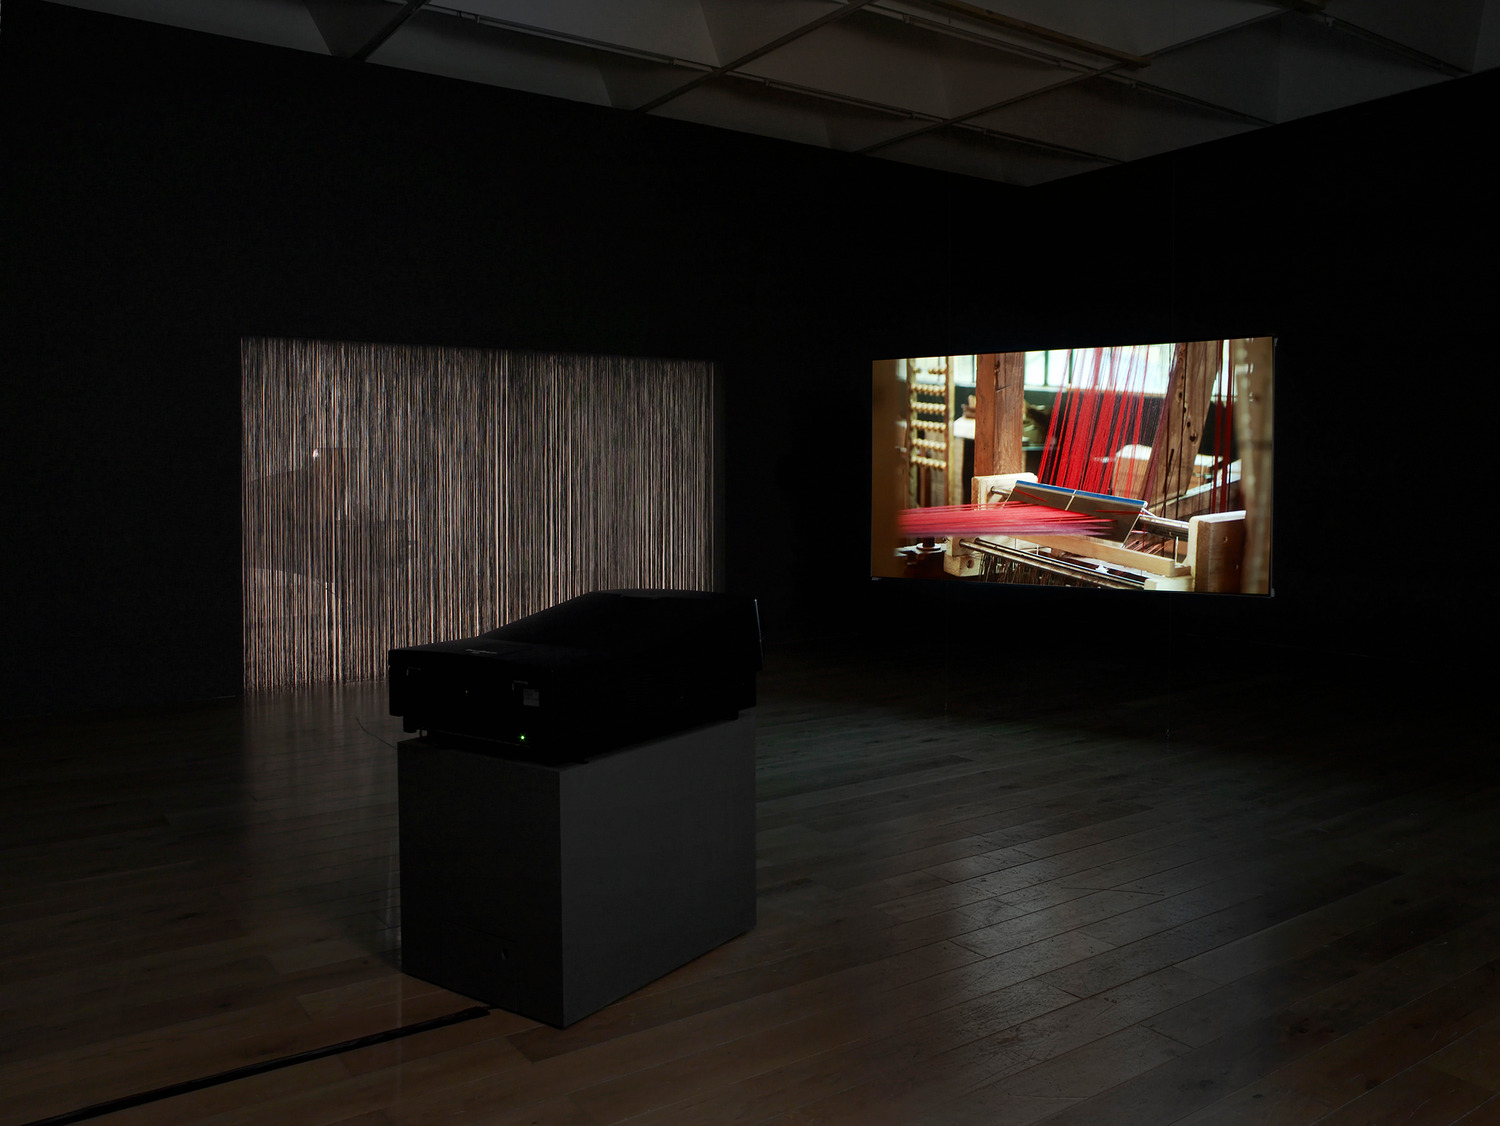 Installation view, Nottingham Contemporary, Nottingham, 2016